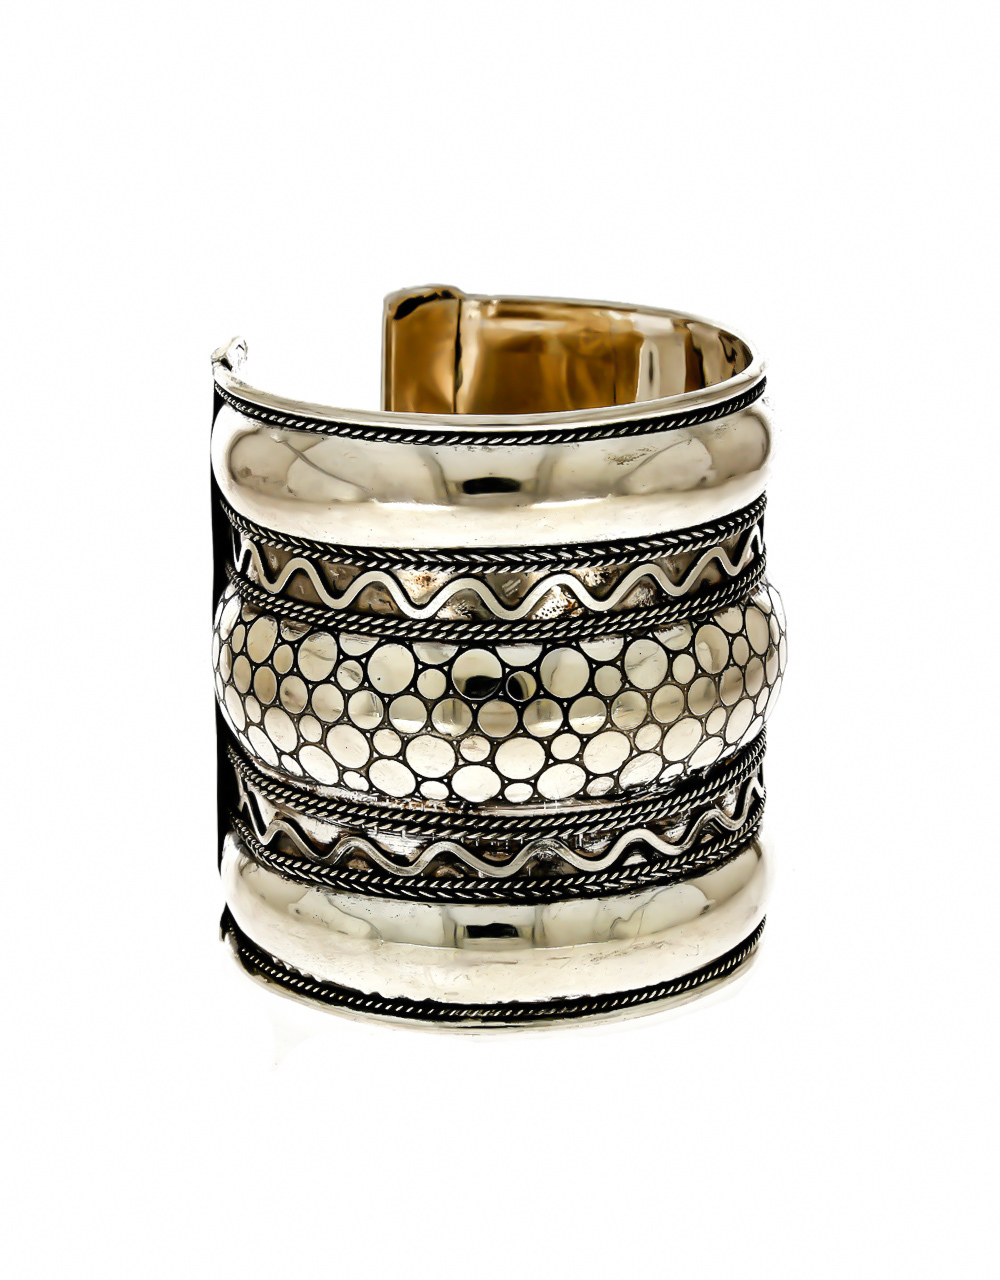 Fashionable Oxdised Bracelets for Girls